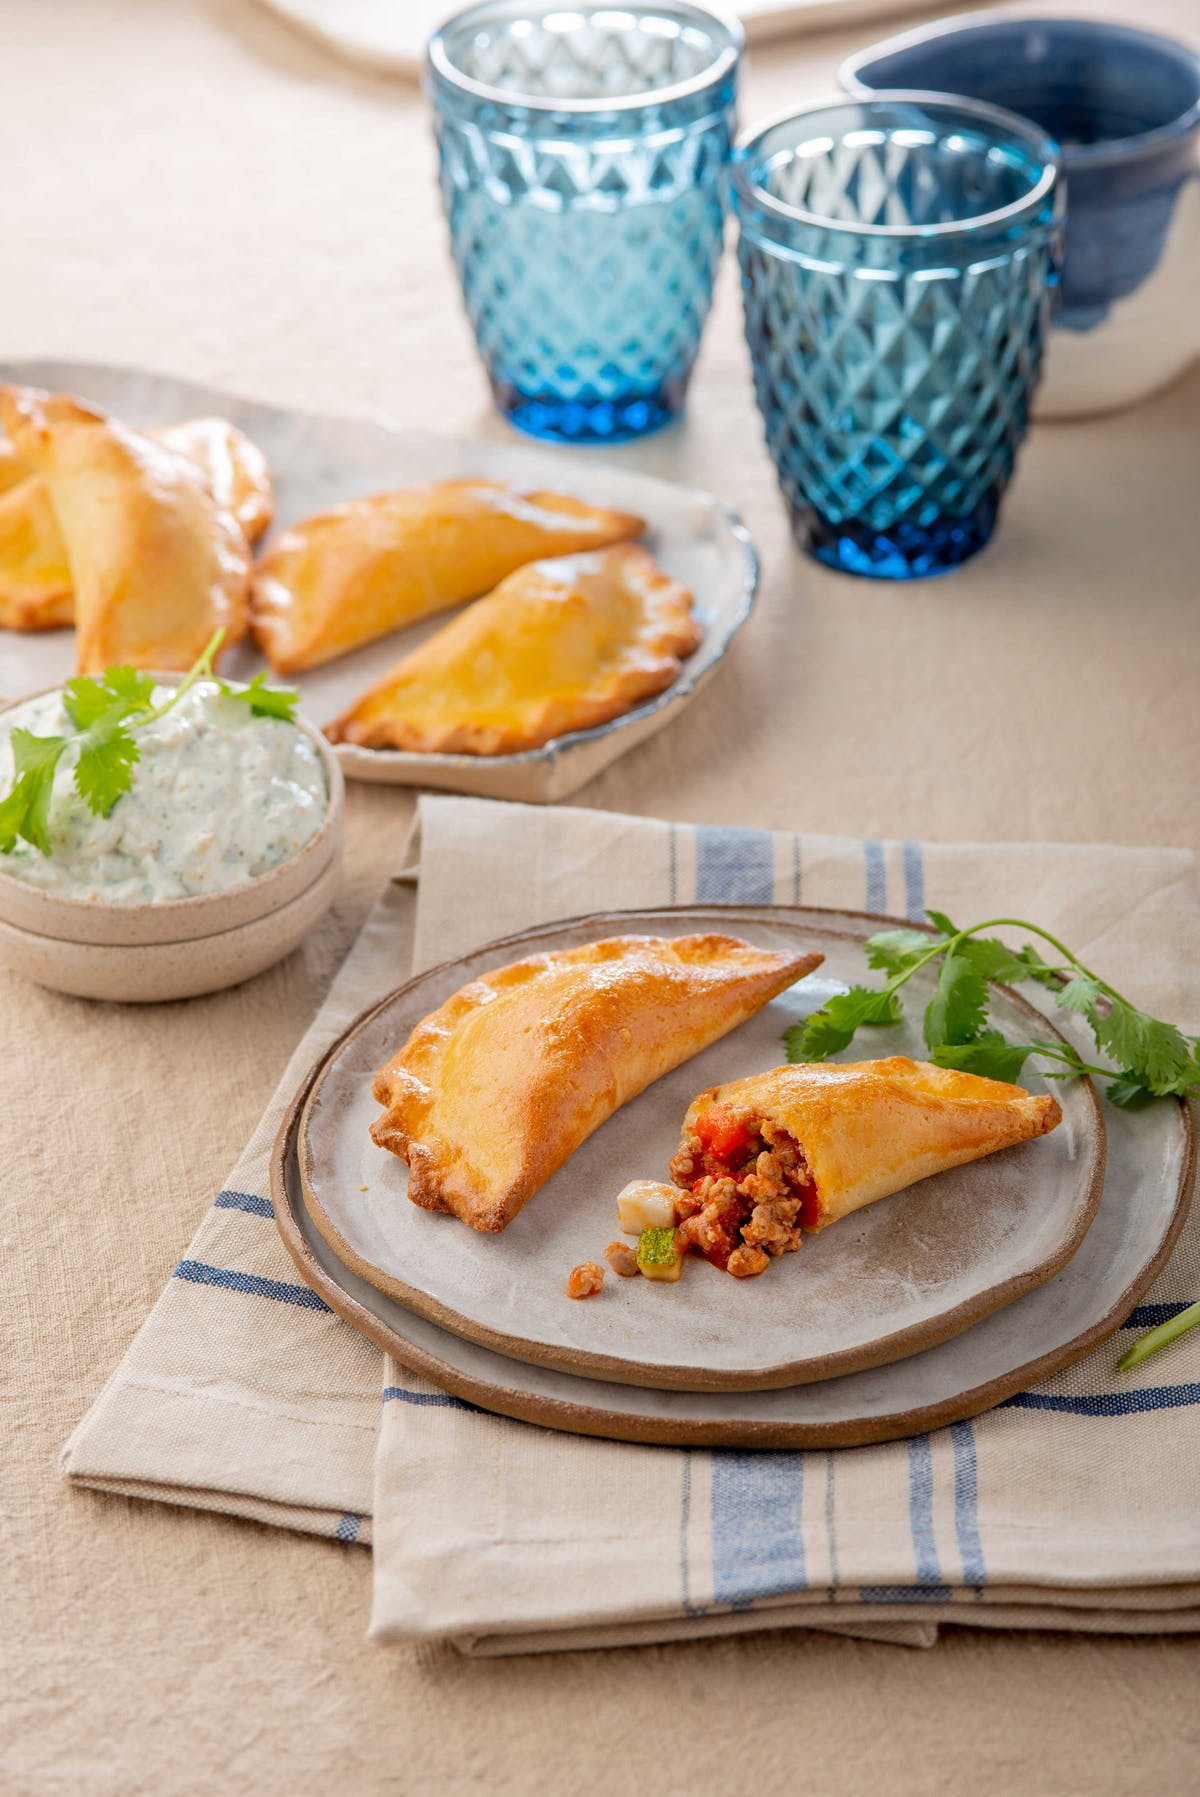 Low-carb beef empanadas with dip